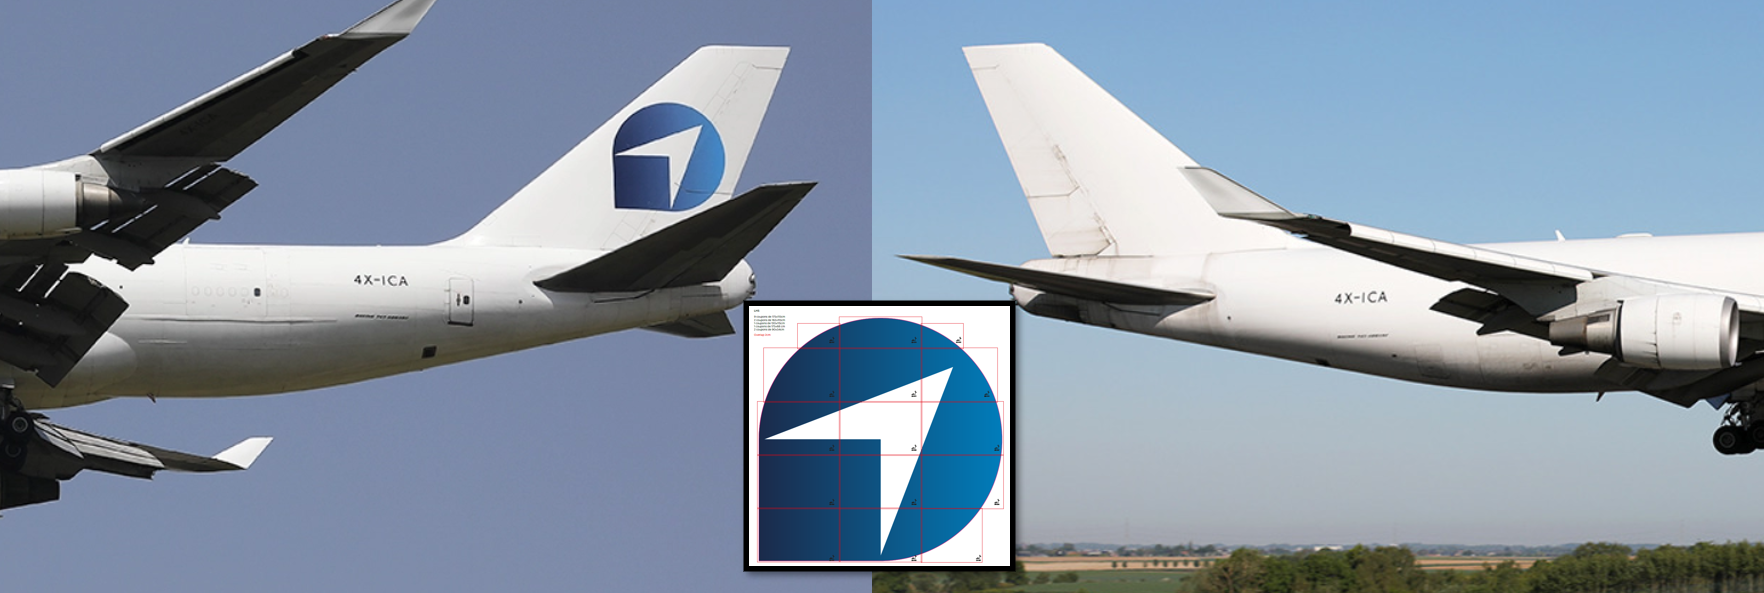 Illustration for: B747-400 freighter vertical fin decals for Challenge Group